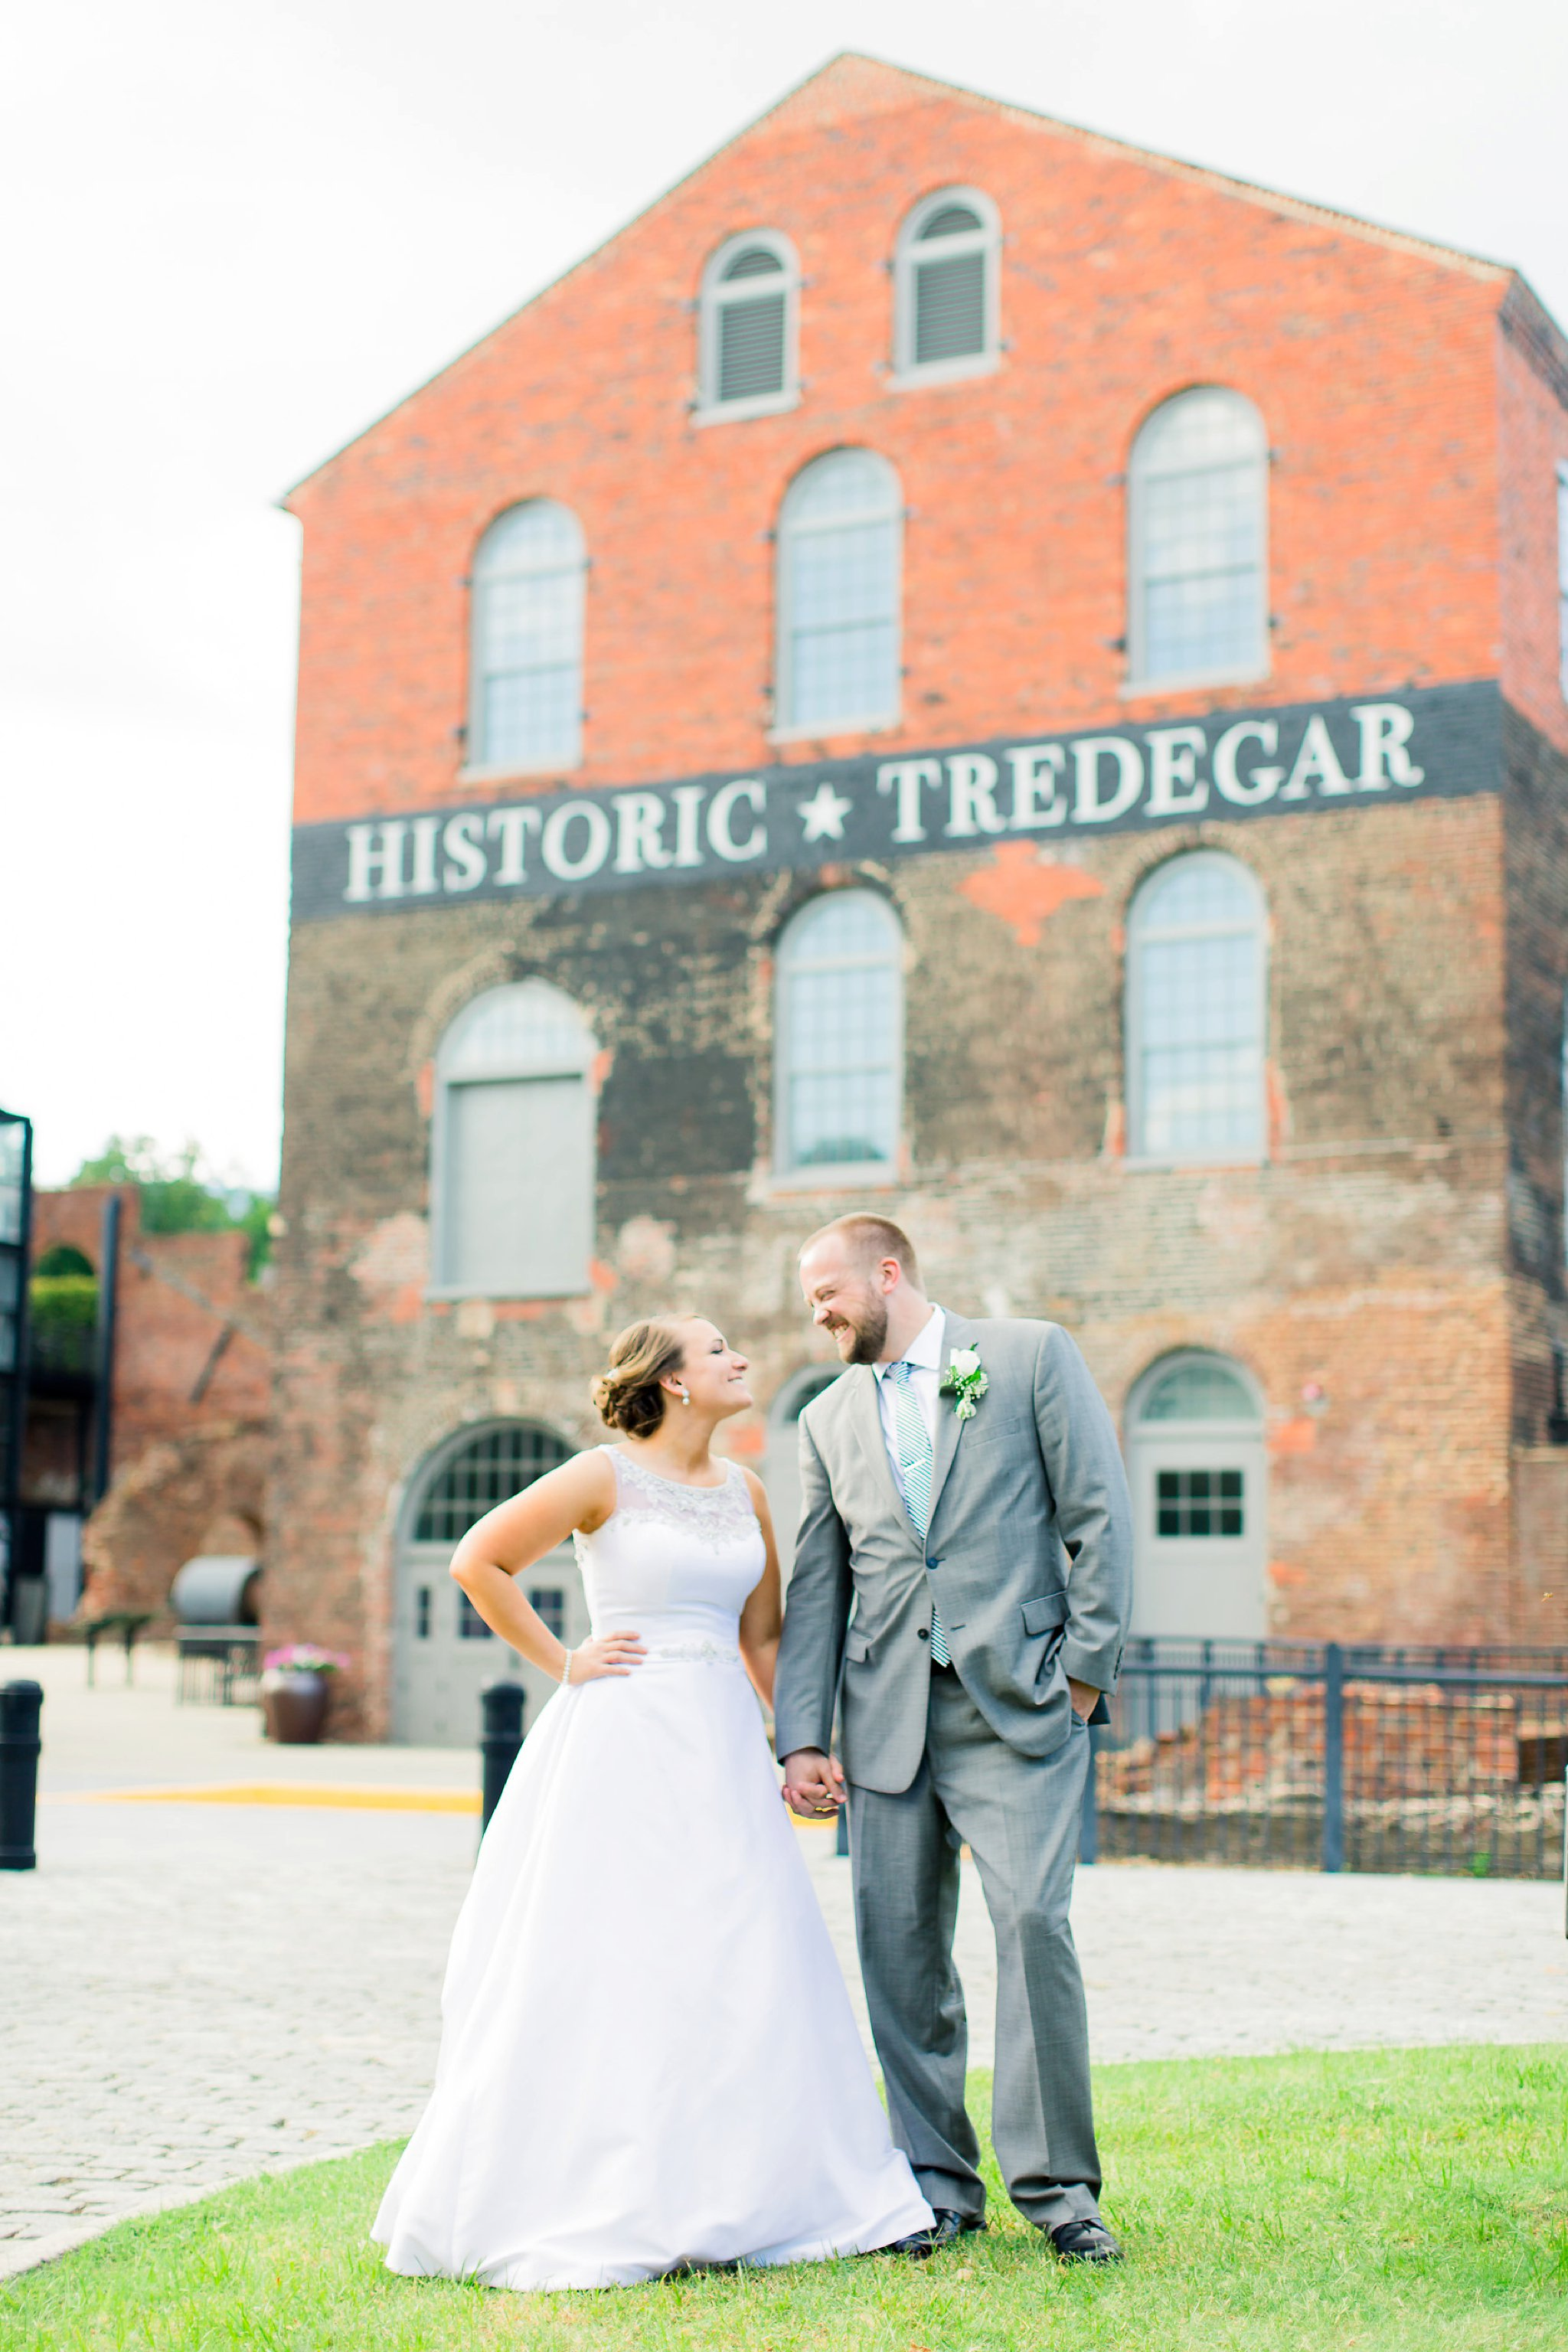 Historic Tredegar Wedding Richmond Wedding Photographer Maggie & Alan Megan Kelsey Photography-174.jpg